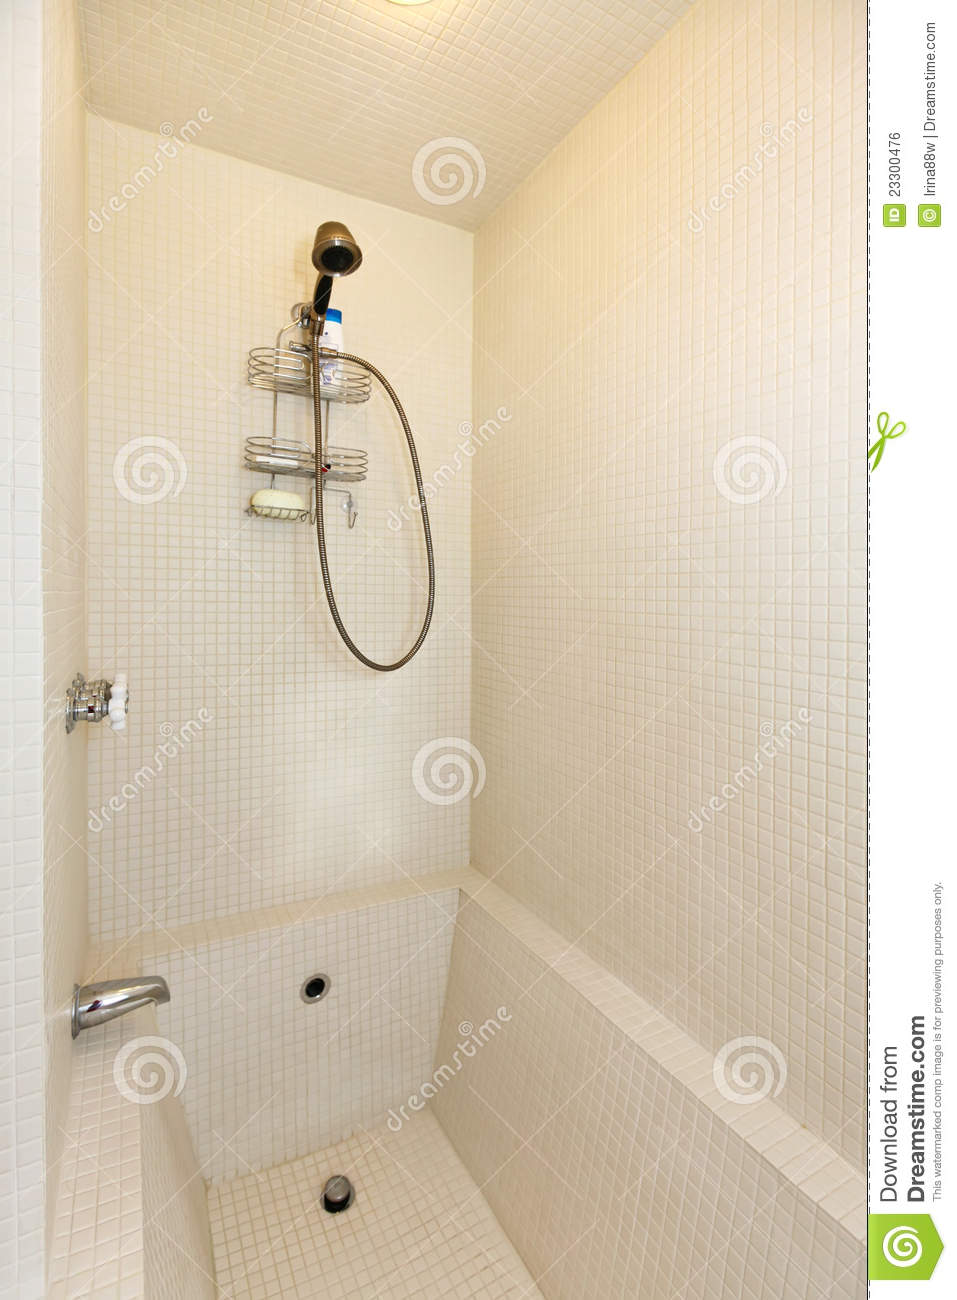 Tinas De Baño De Azulejo:White Tub and Shower Tile Designs